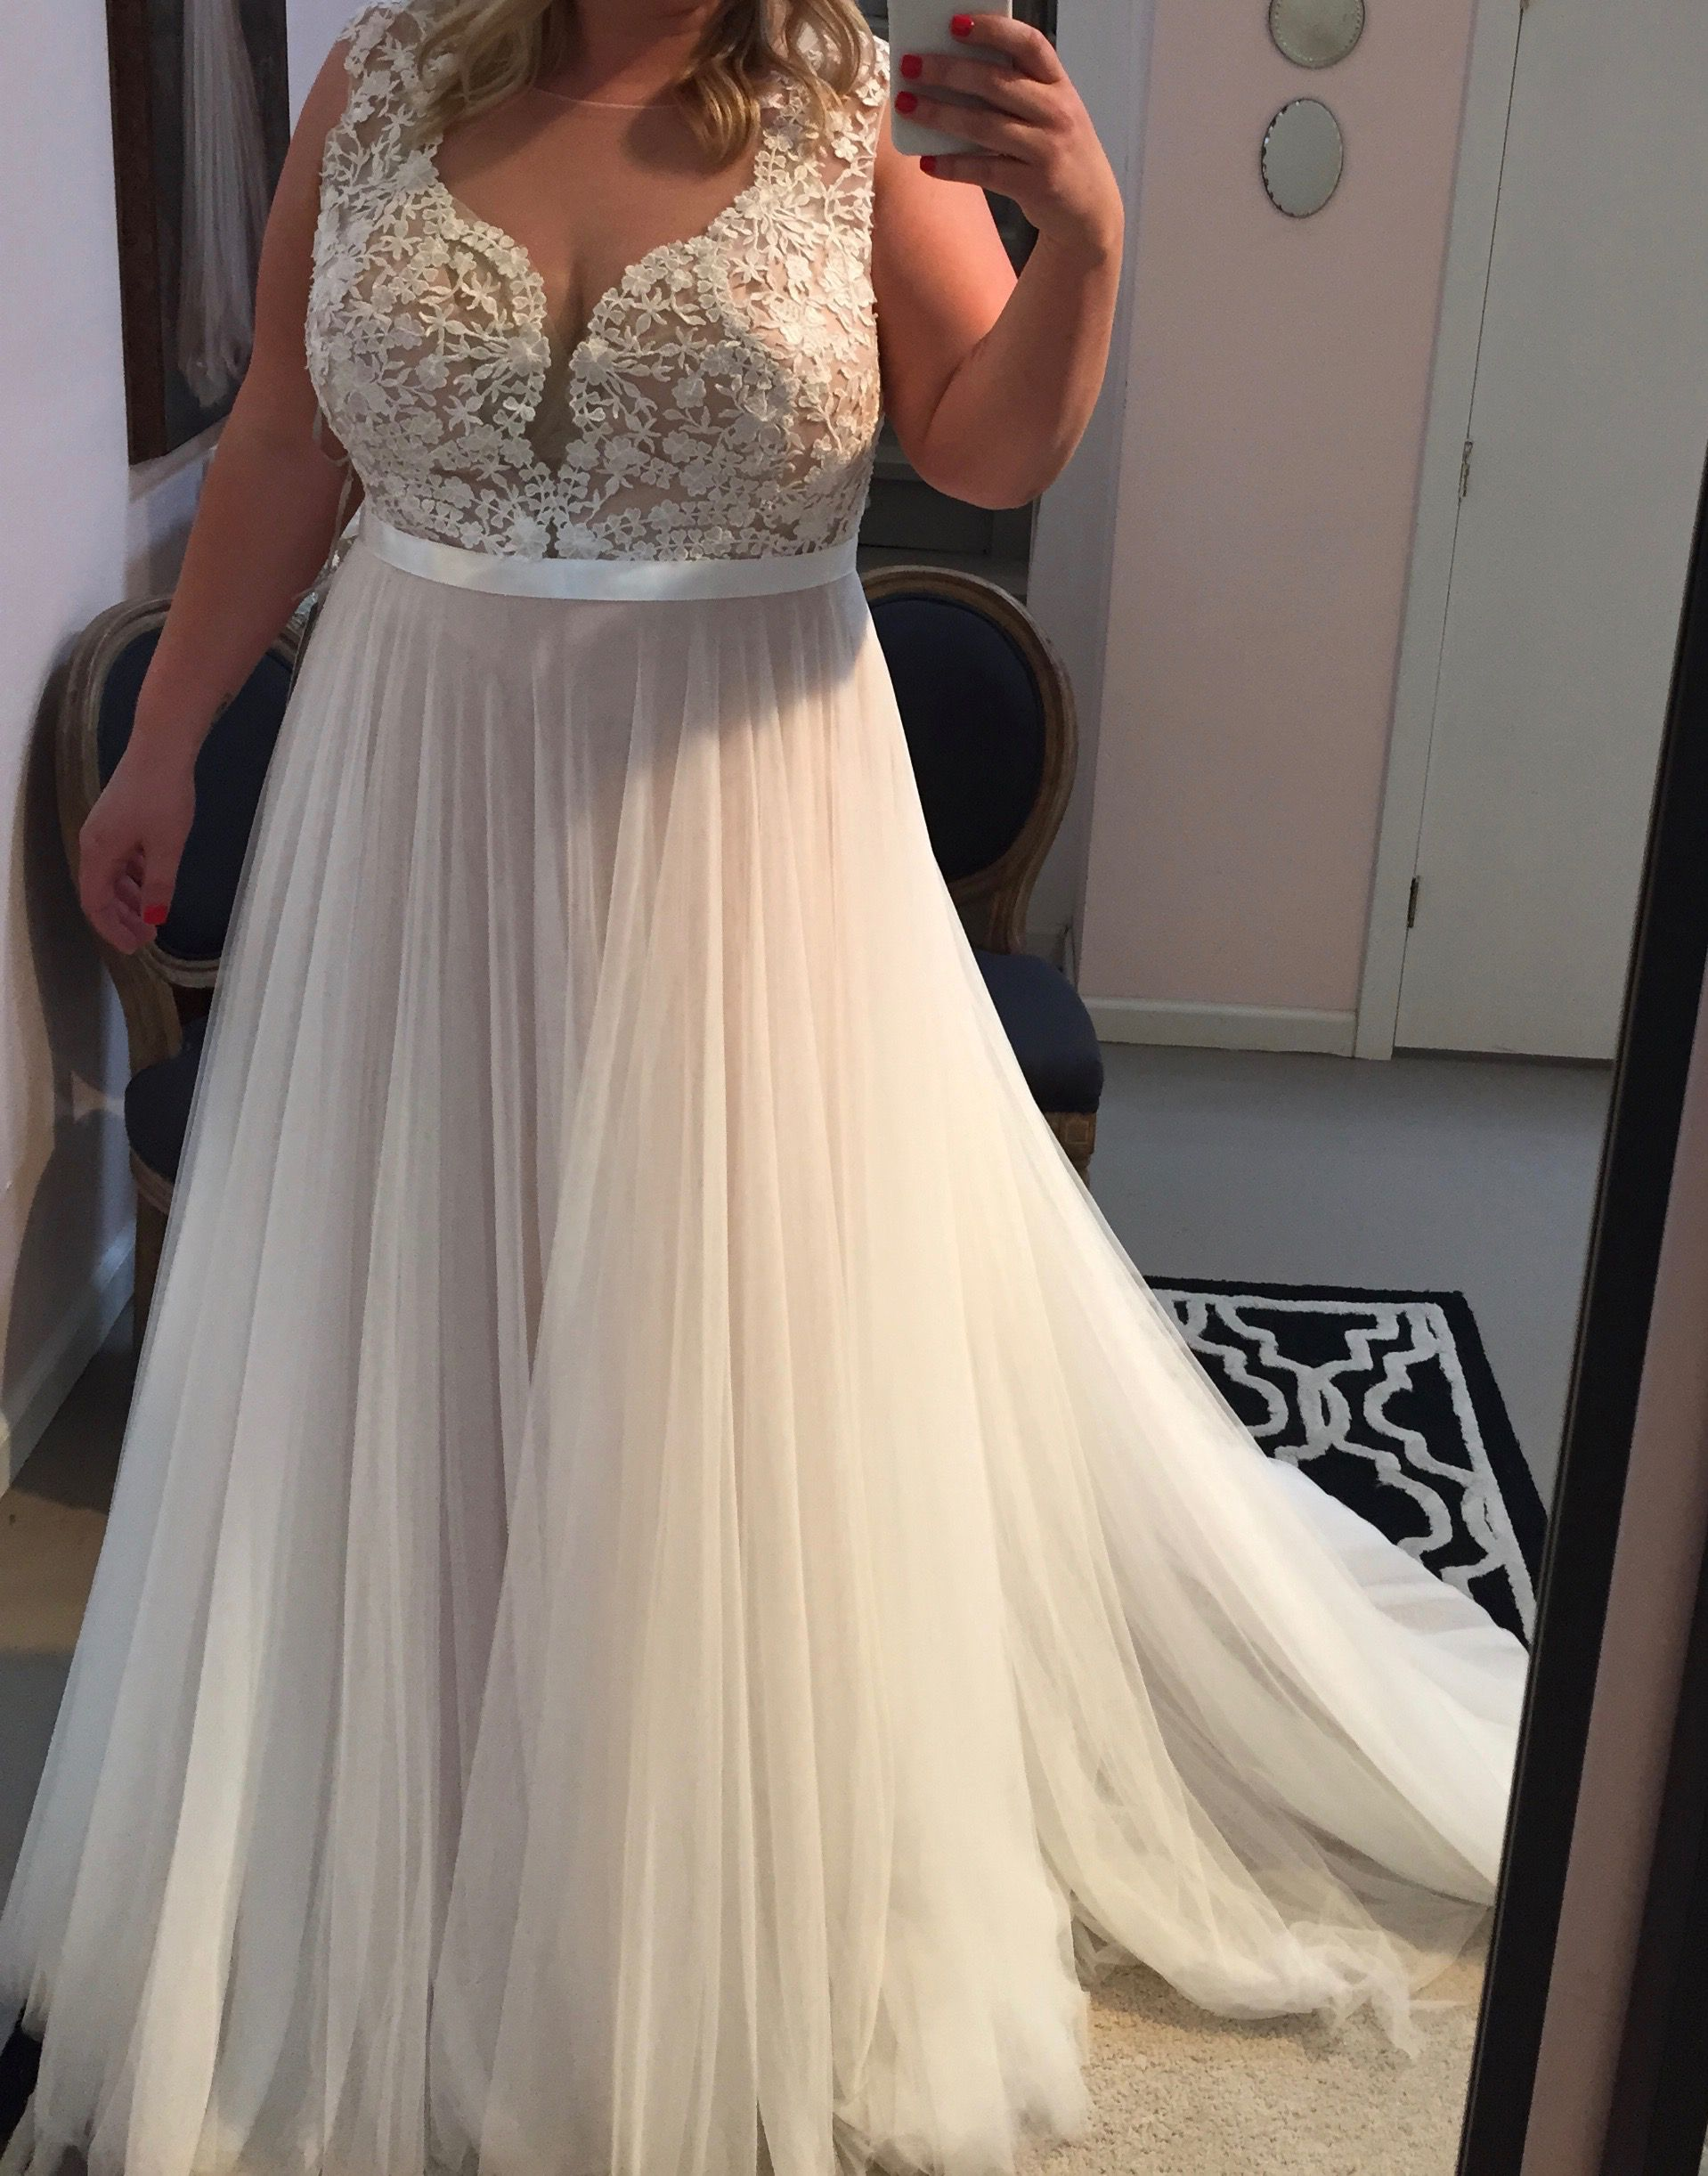 Plus Size Wedding Dressbeach Wedding Dress